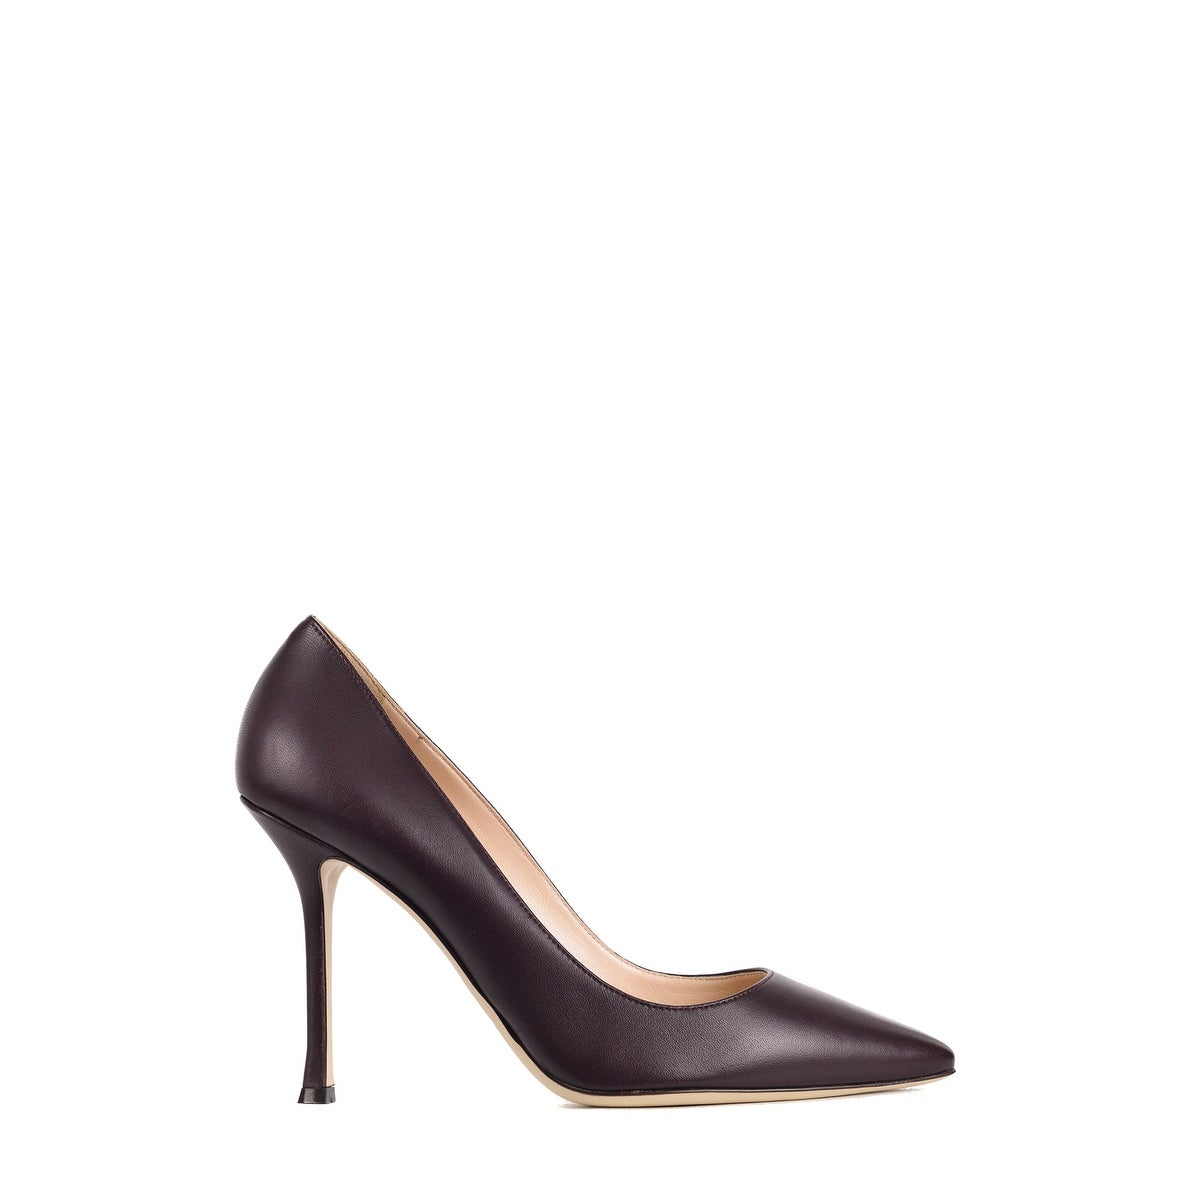 los angeles 53ce1 1f2d4 Sergio Rossi Womens Brown Leather Scarpe Donna Classic Pumps